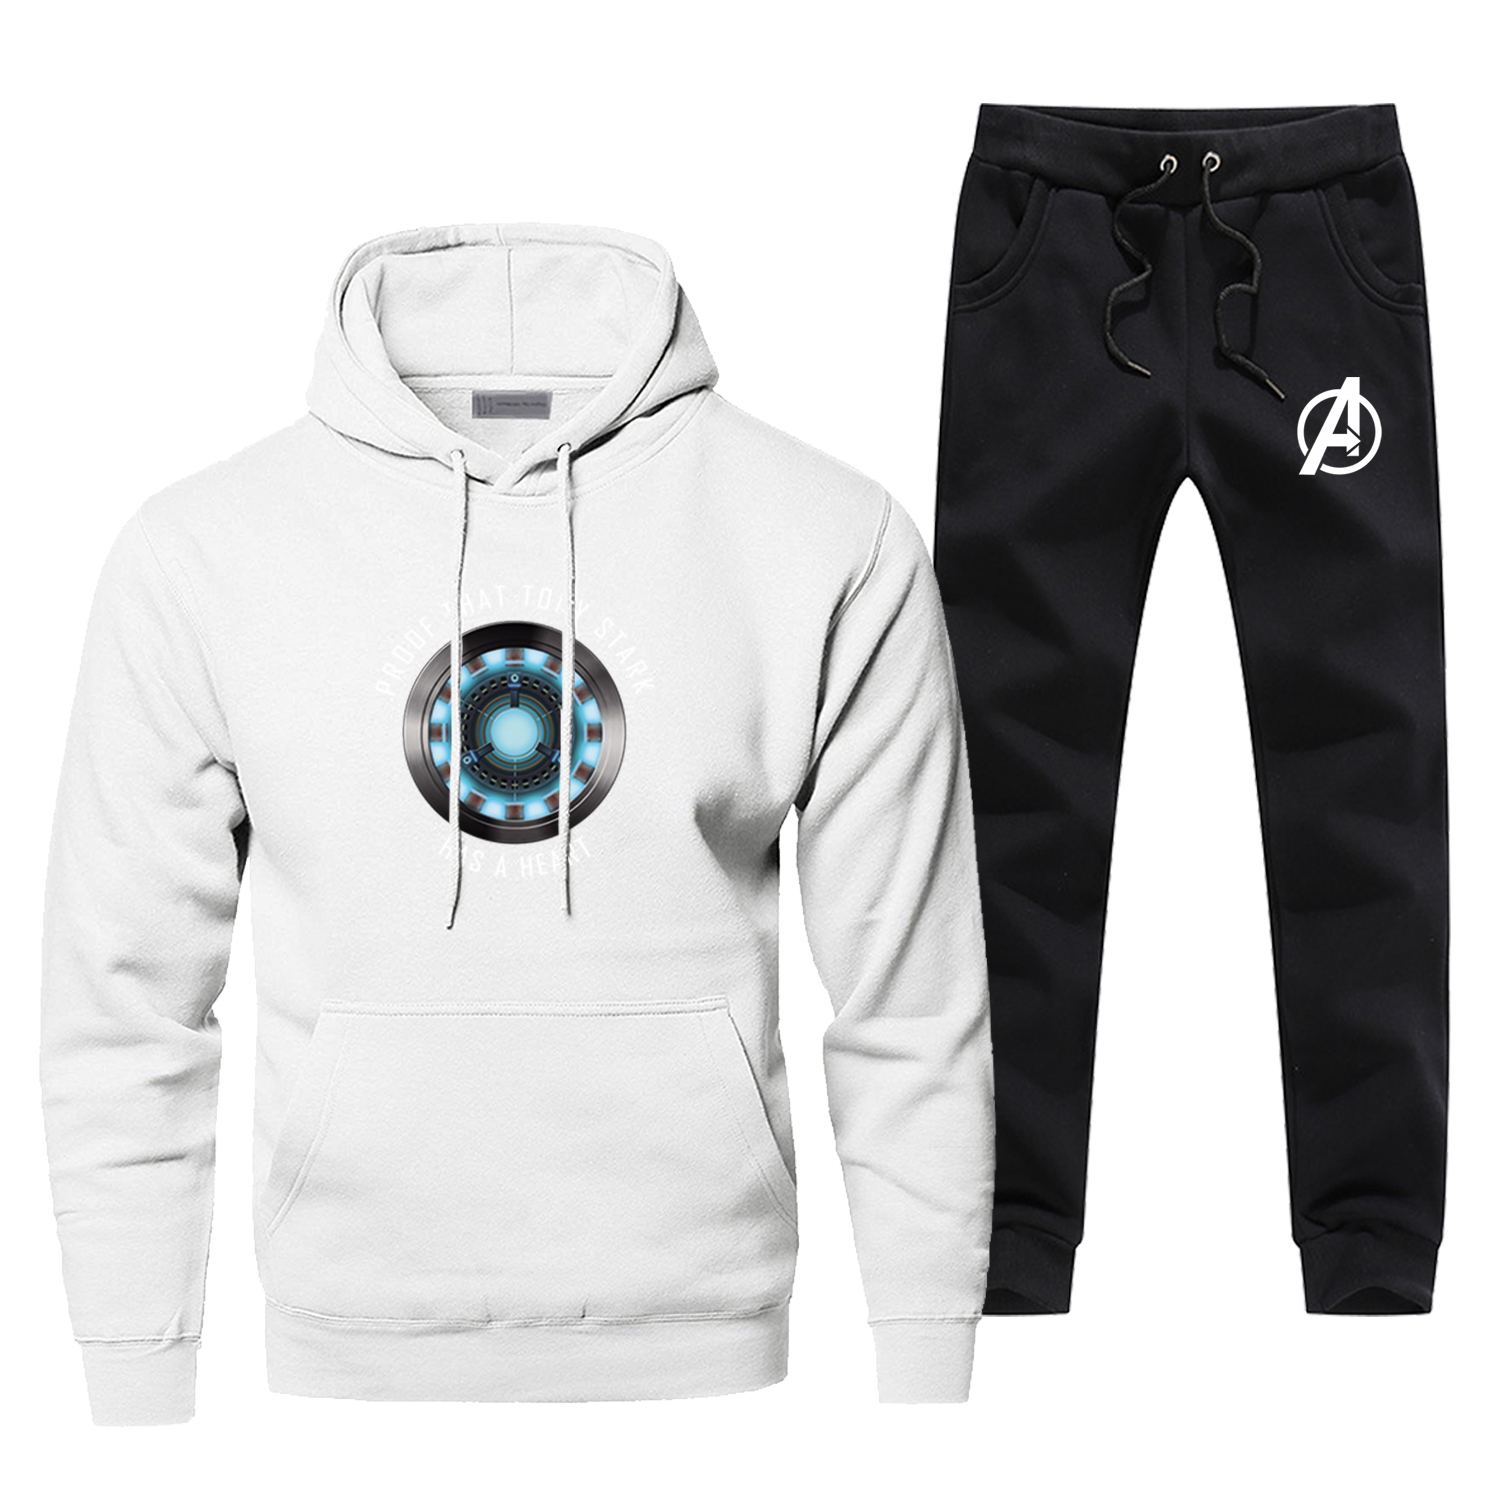 Iron Man Hoodies Cosplay Men's Sets Tony Stark Avengers Complete Man Tracksuit Casual Fashion Hip Hop Pants Sweatshirts Hoodie